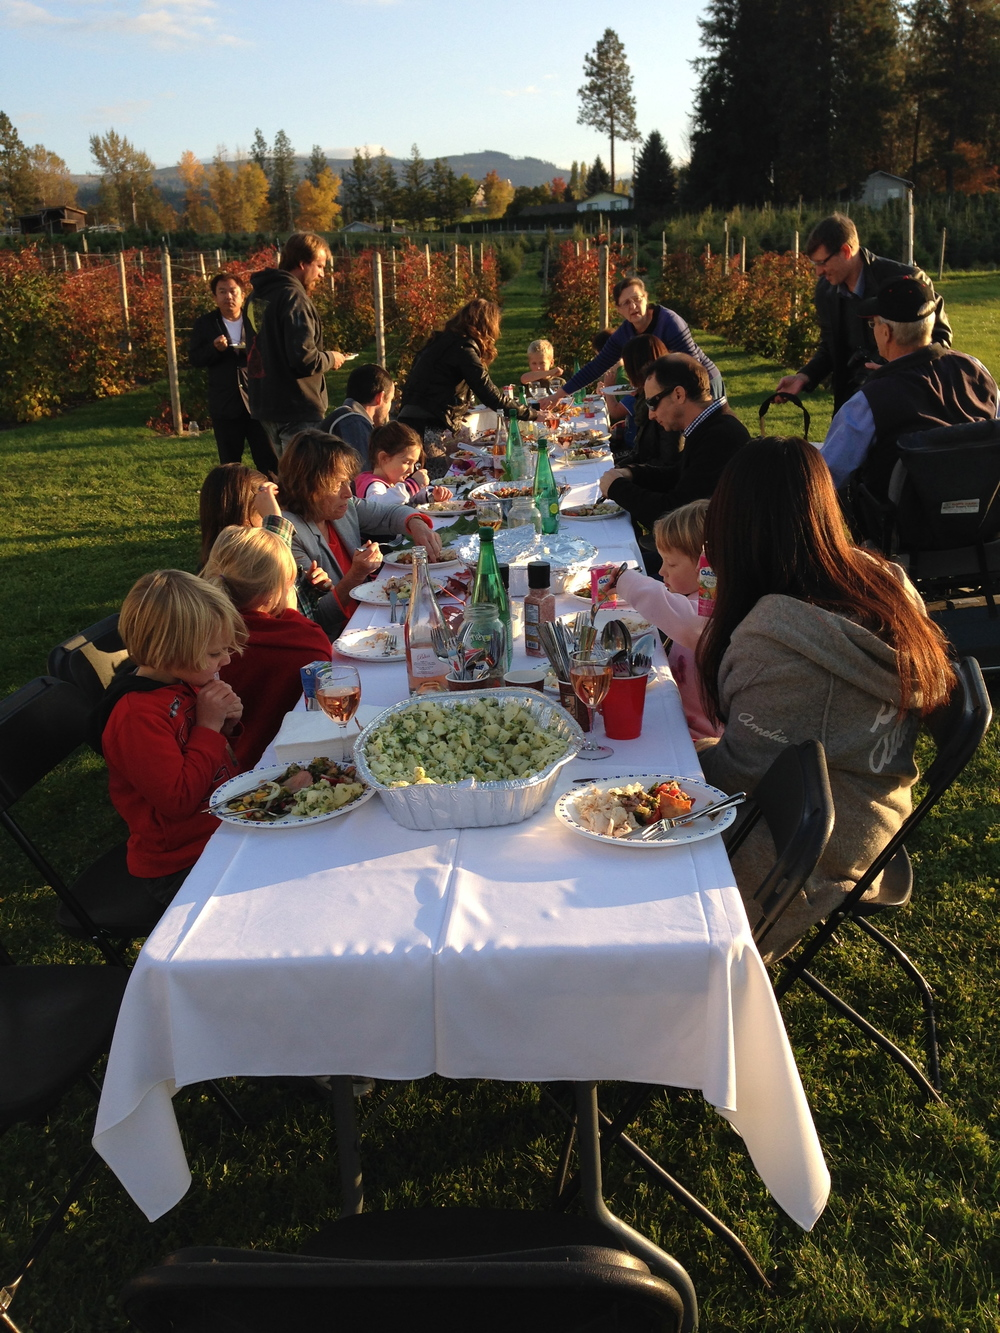 Outdoor harvest dinner to celebrate our new farm location with family & friends...